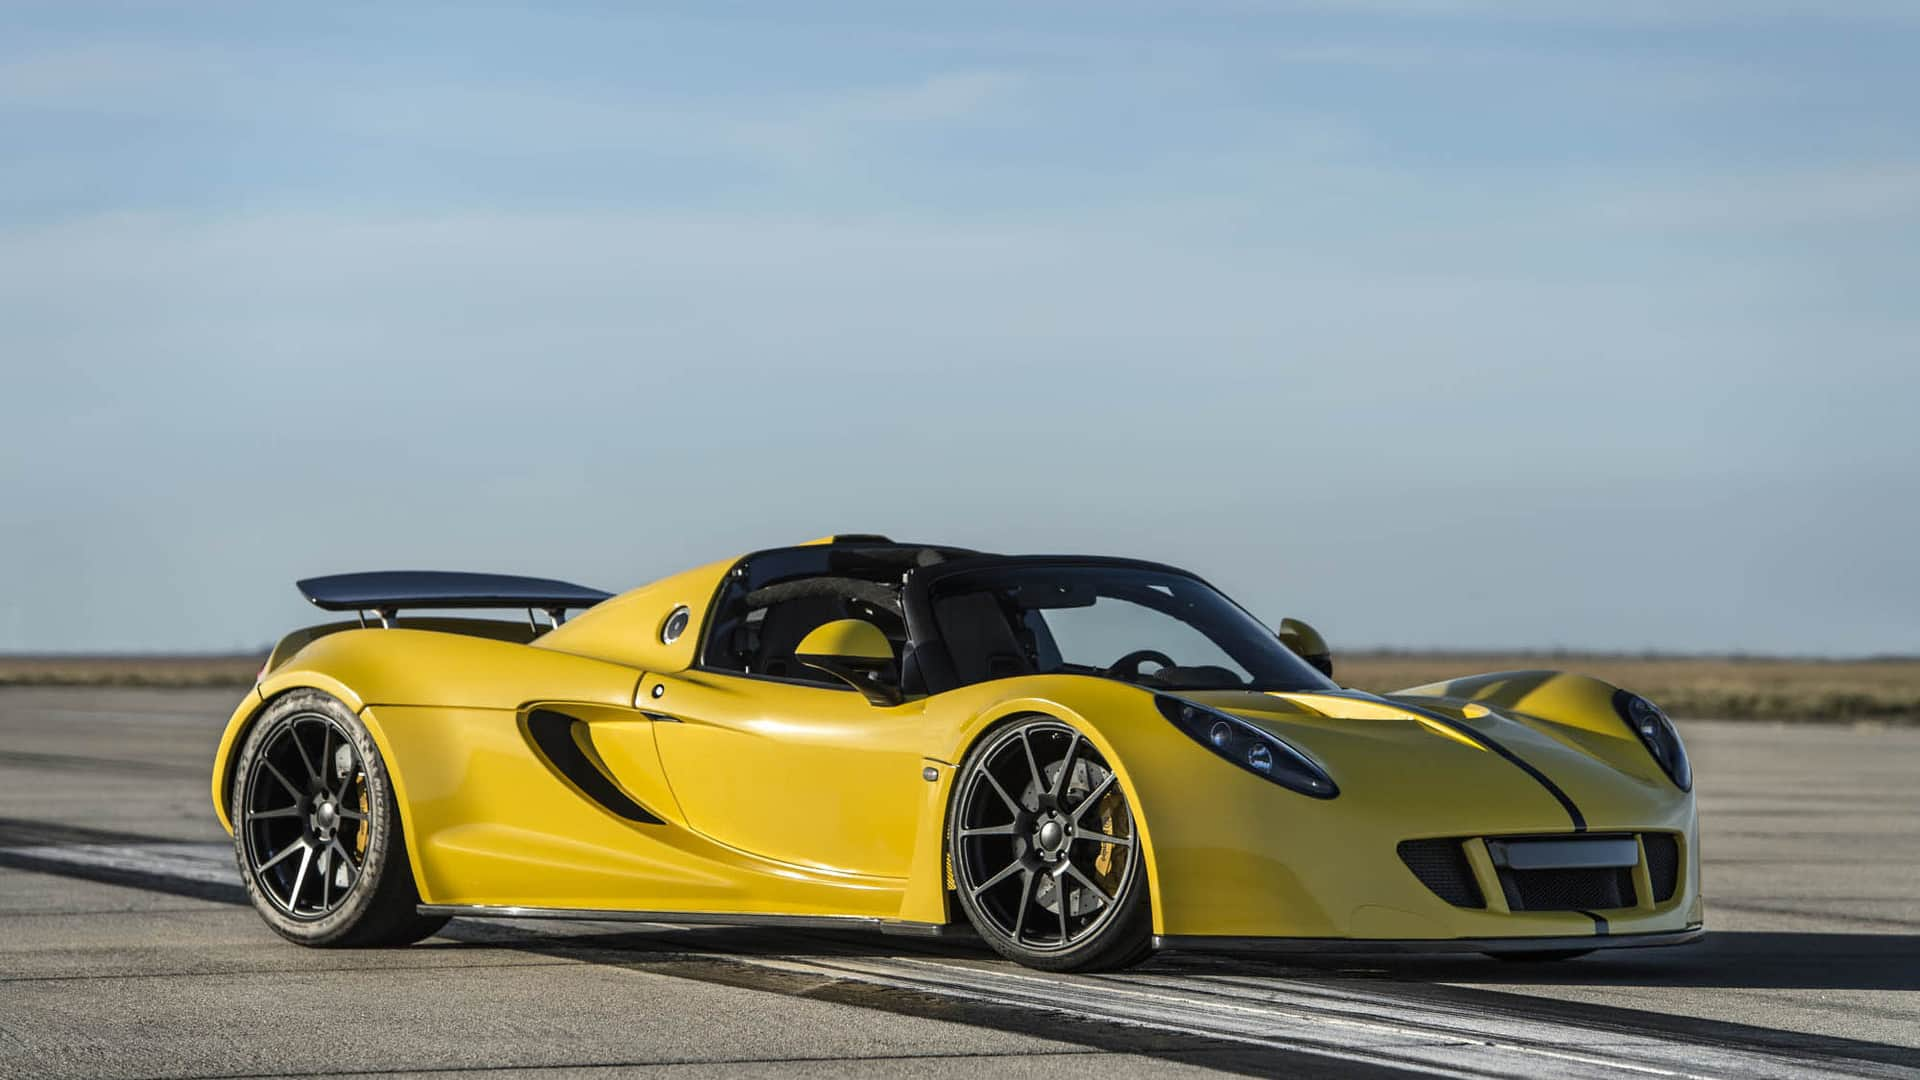 2018 Hennessey Venom F5 The World S Fastest Convertible Is Now The Hennessey Venom Gt Spyder